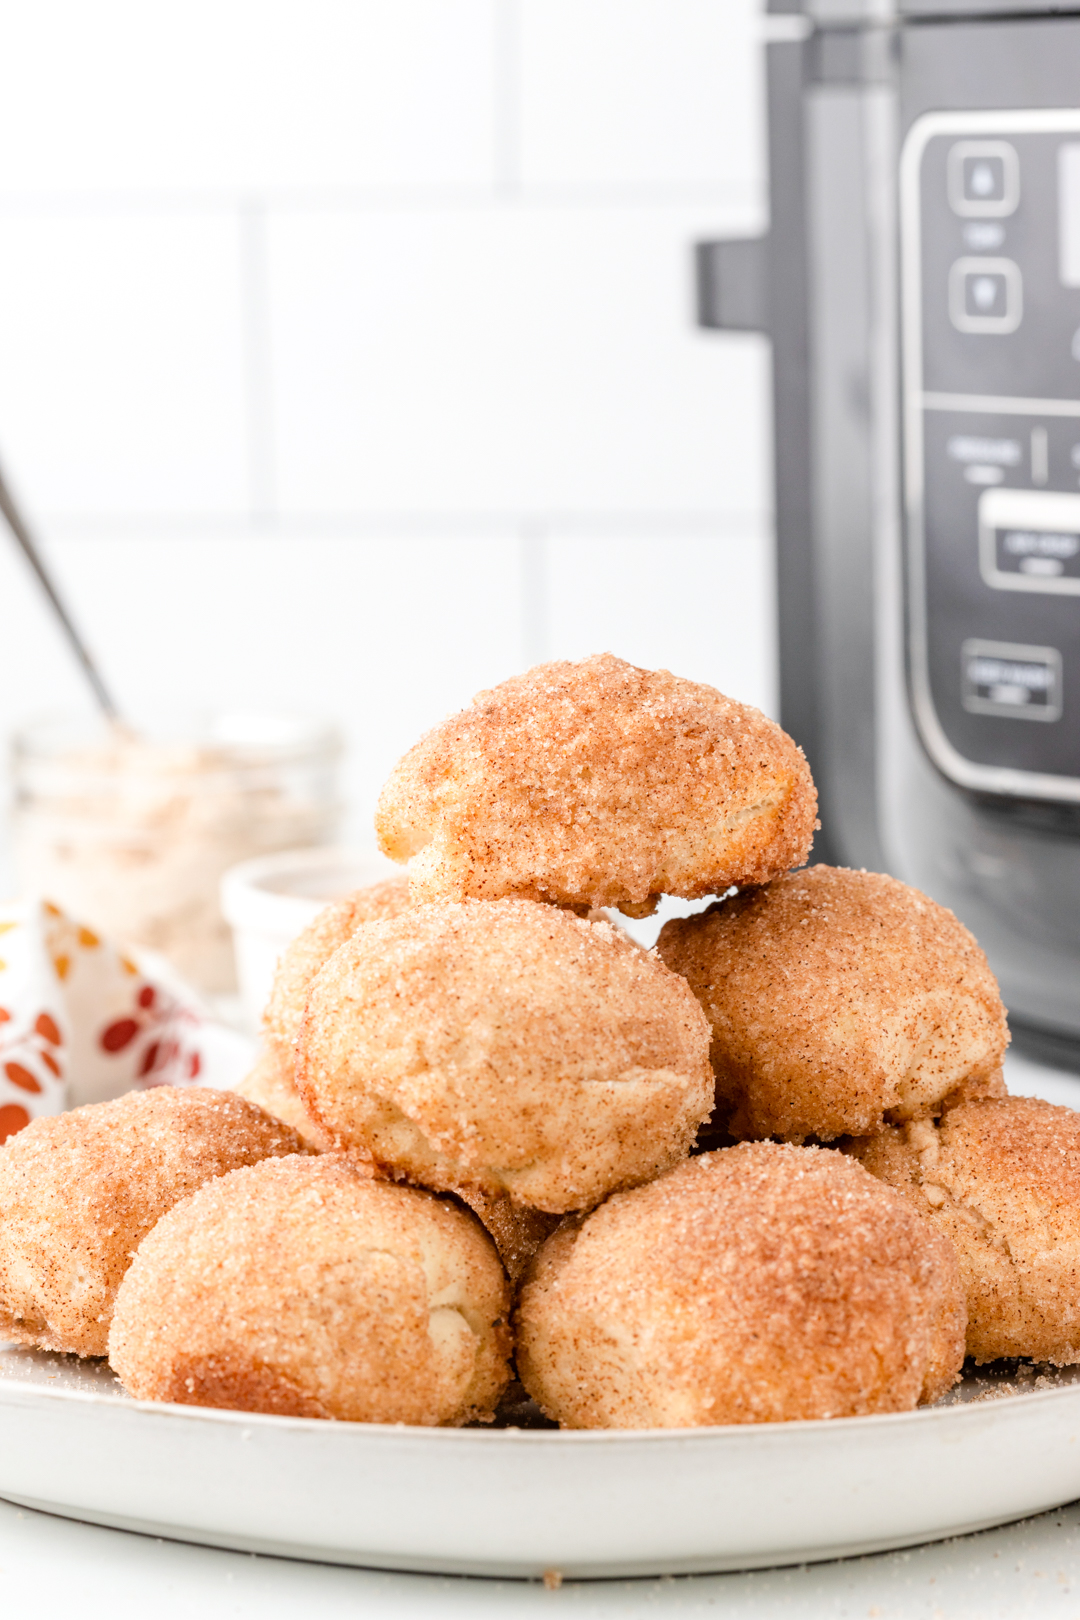 stack of donut bites with air fryer in the background